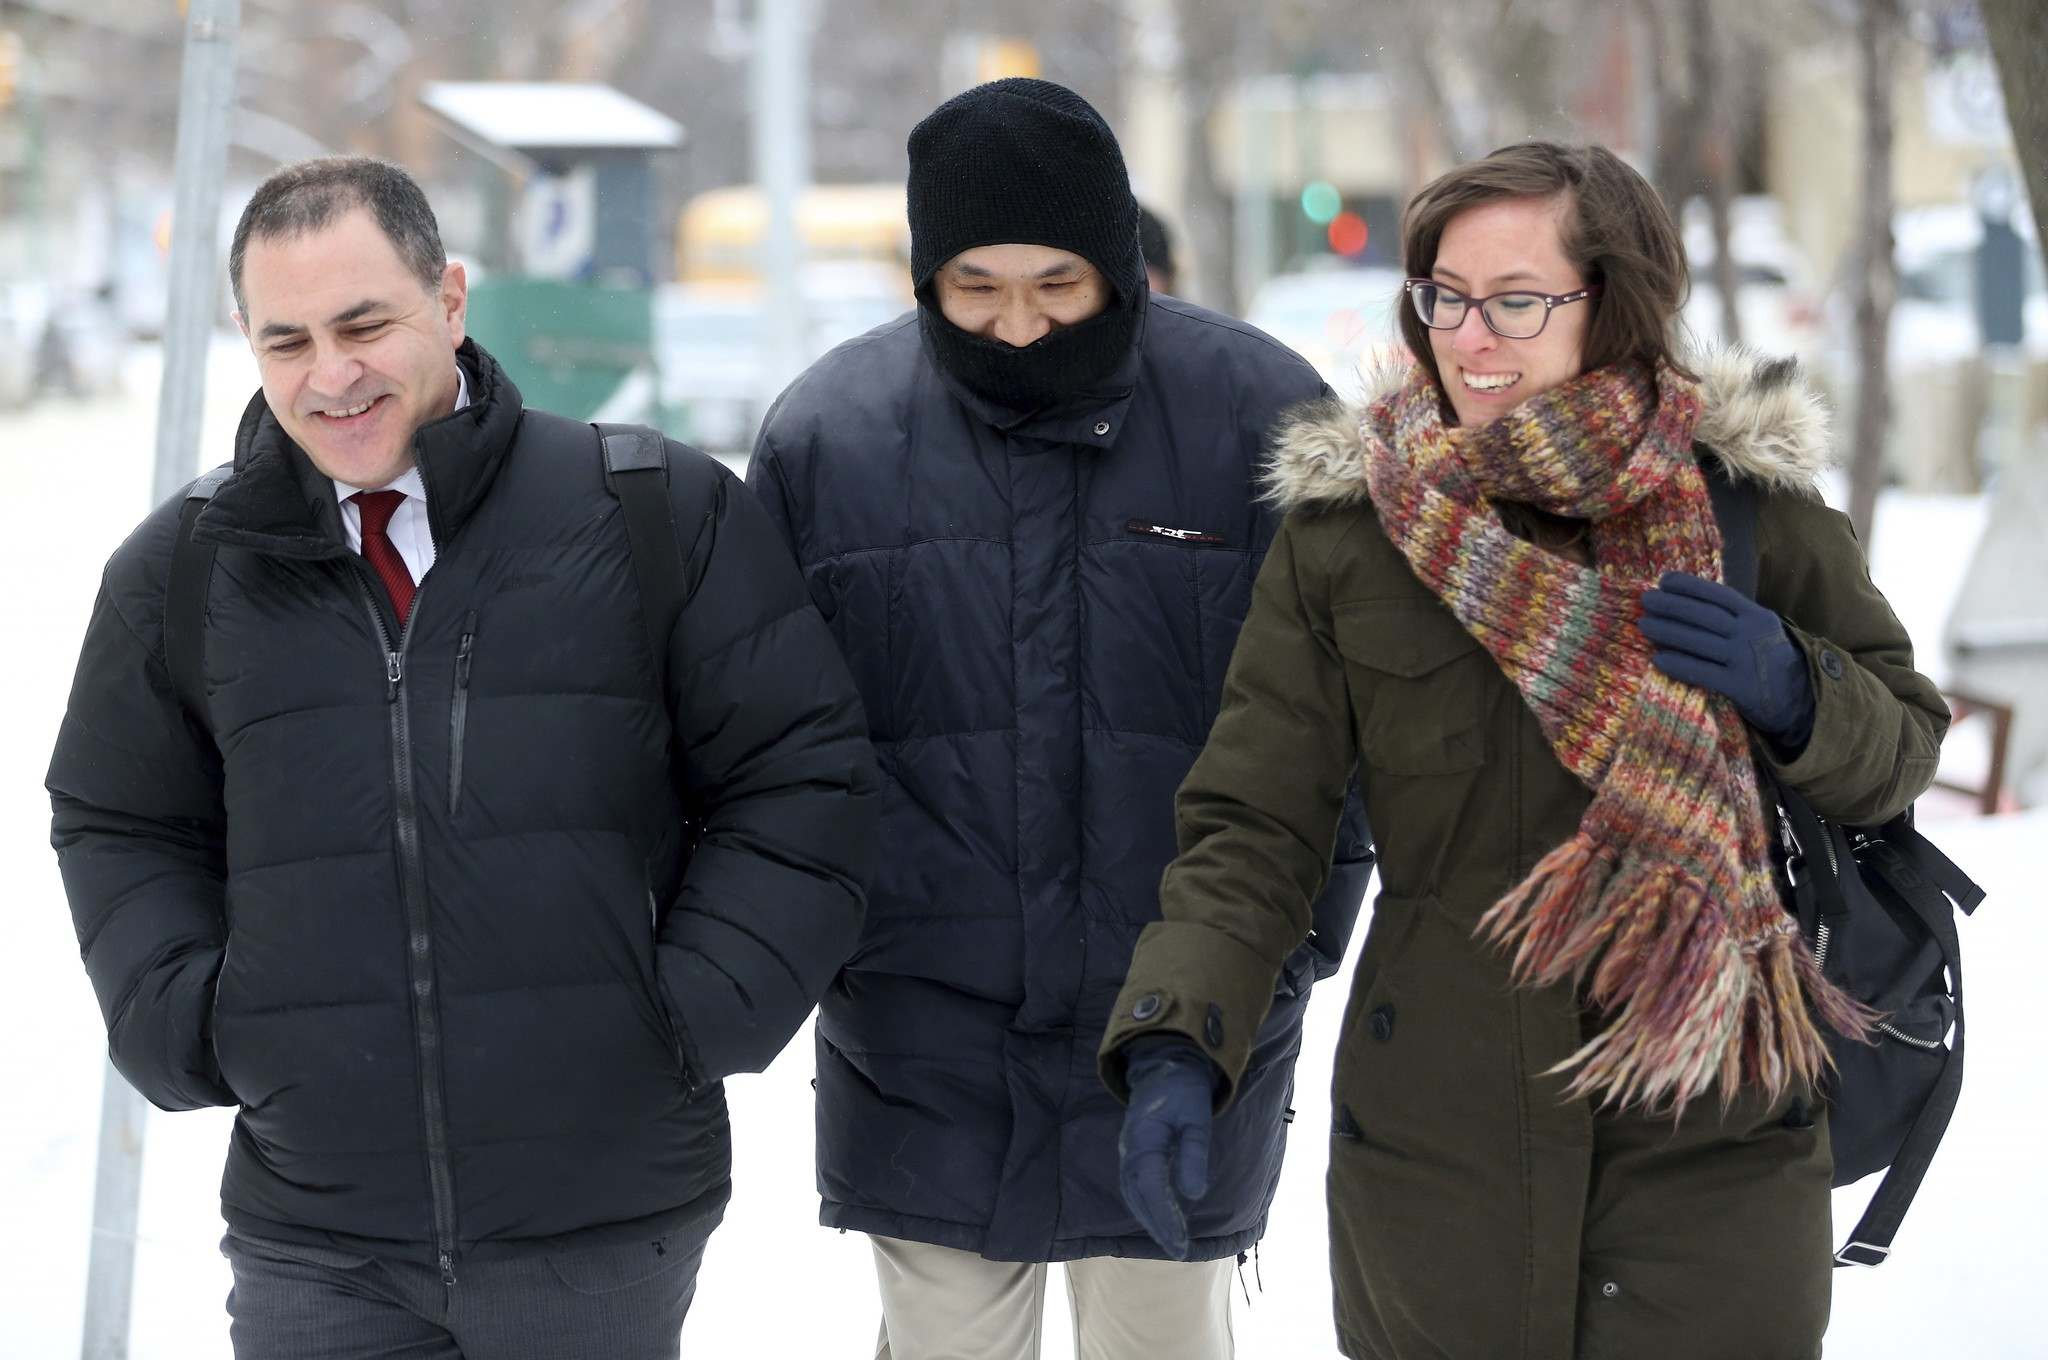 WAYNE GLOWACKI / WINNIPEG FREE PRESS</p><p>Will Baker, formerly known as Vince Li, leaves the Law Courts building in Winnipeg, after his annual criminal code review board hearing with his lawyer Alan Libman, left, Monday.</p>